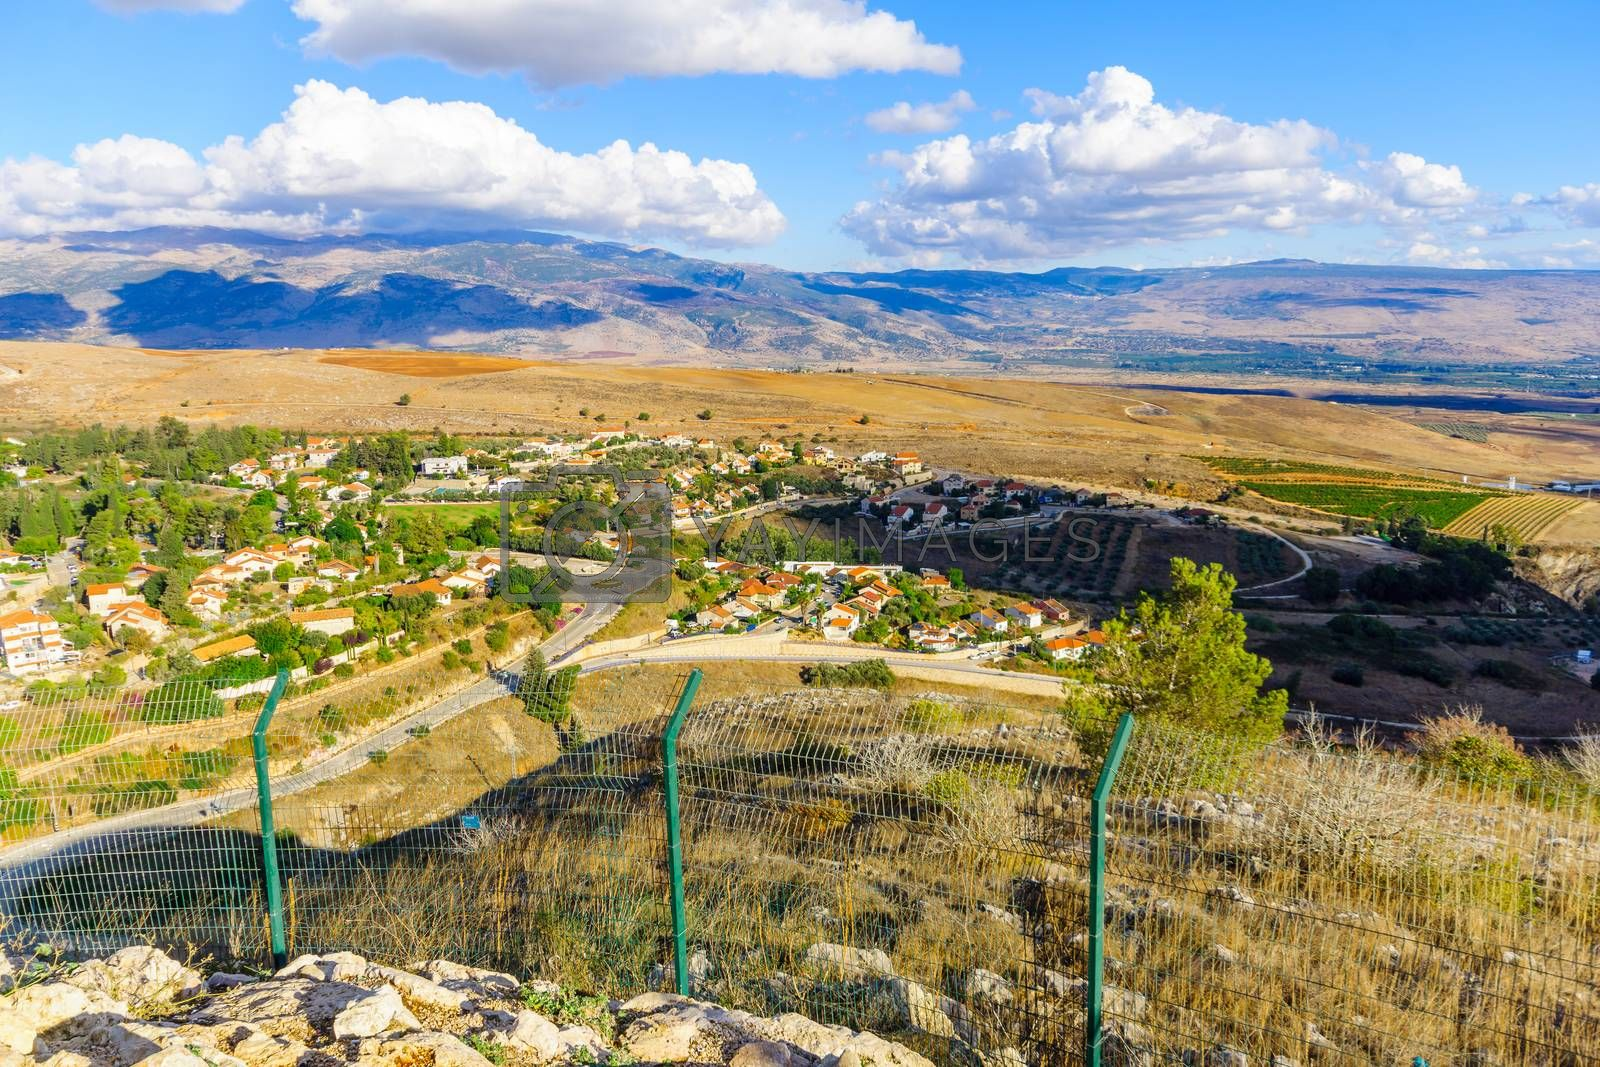 View of the town of Metula, and nearby landscape, Norther Israel, at the border with Lebanon